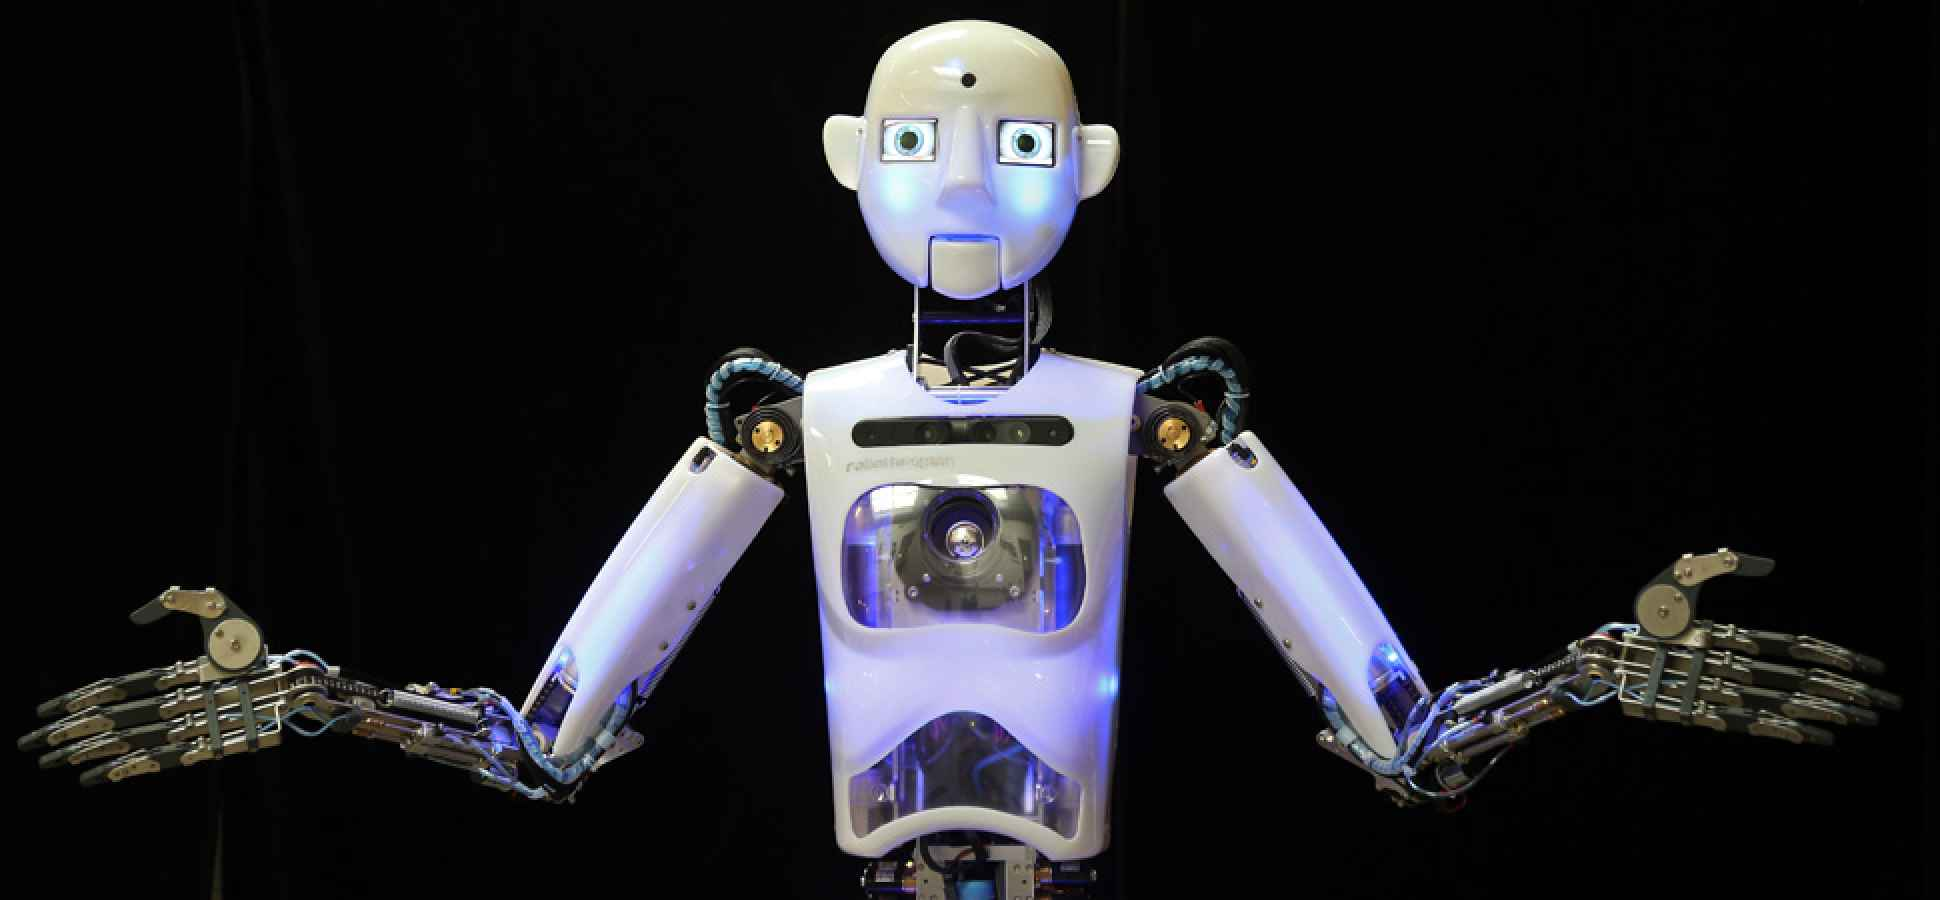 The First Robot That Behaves Like a Human